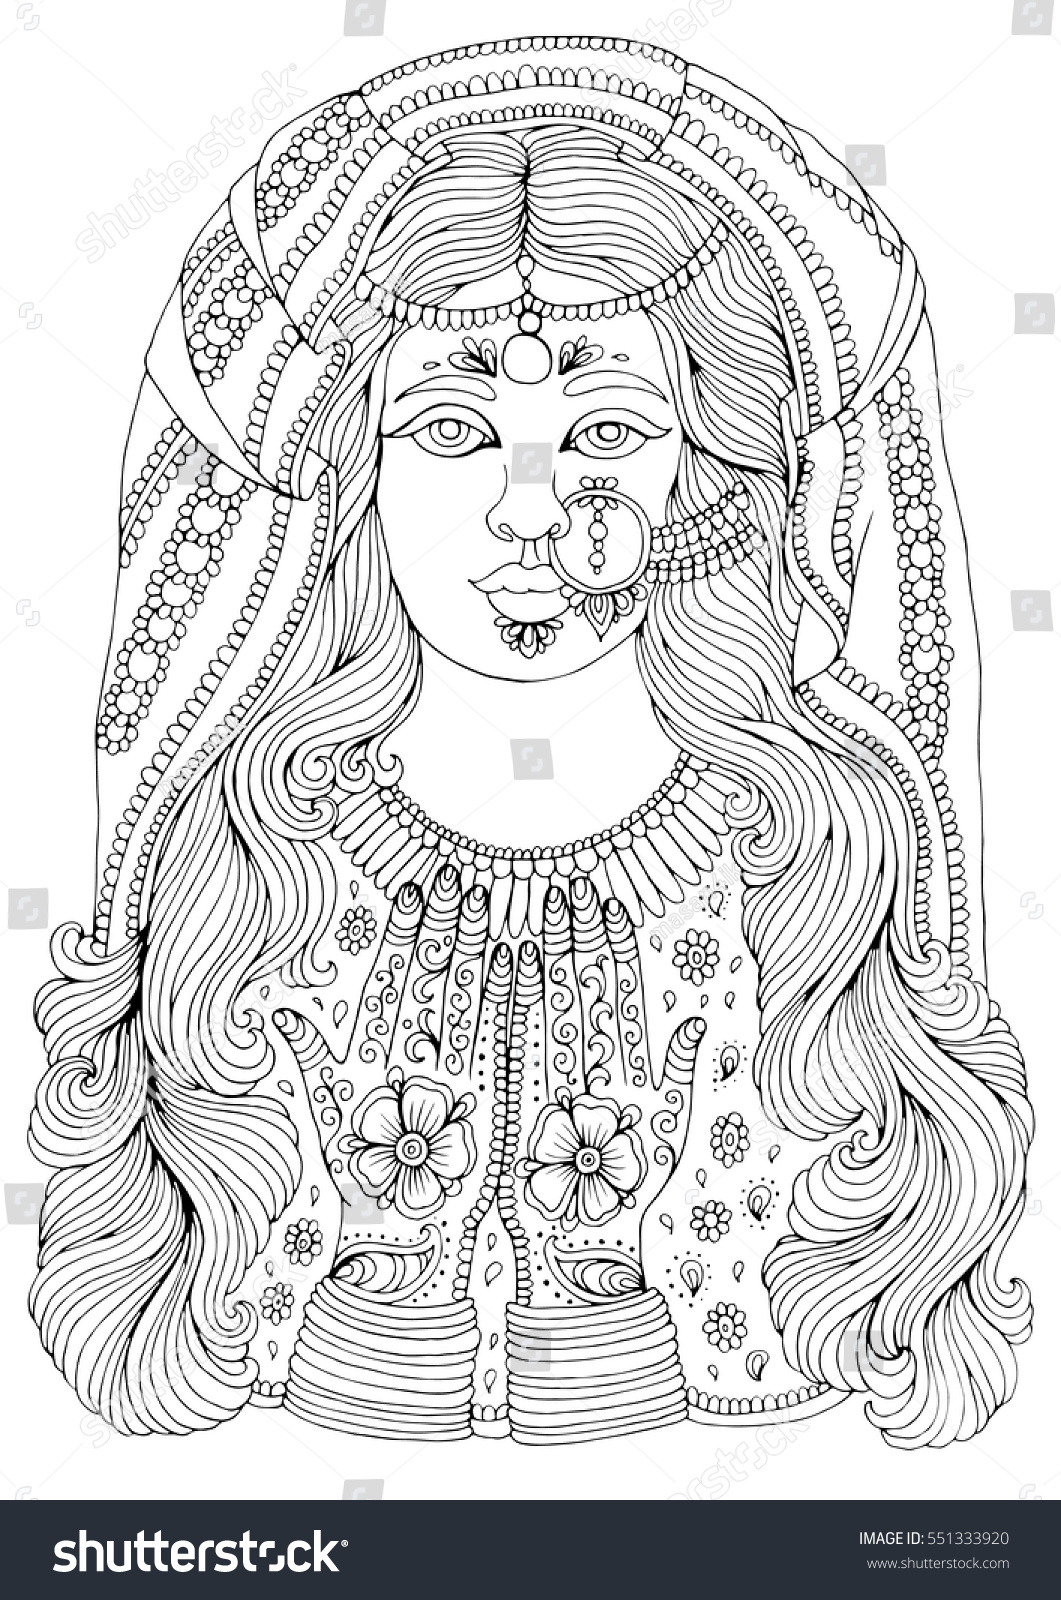 vector hand drawn portrait of an indian girl with a pattern mehendi on the hands